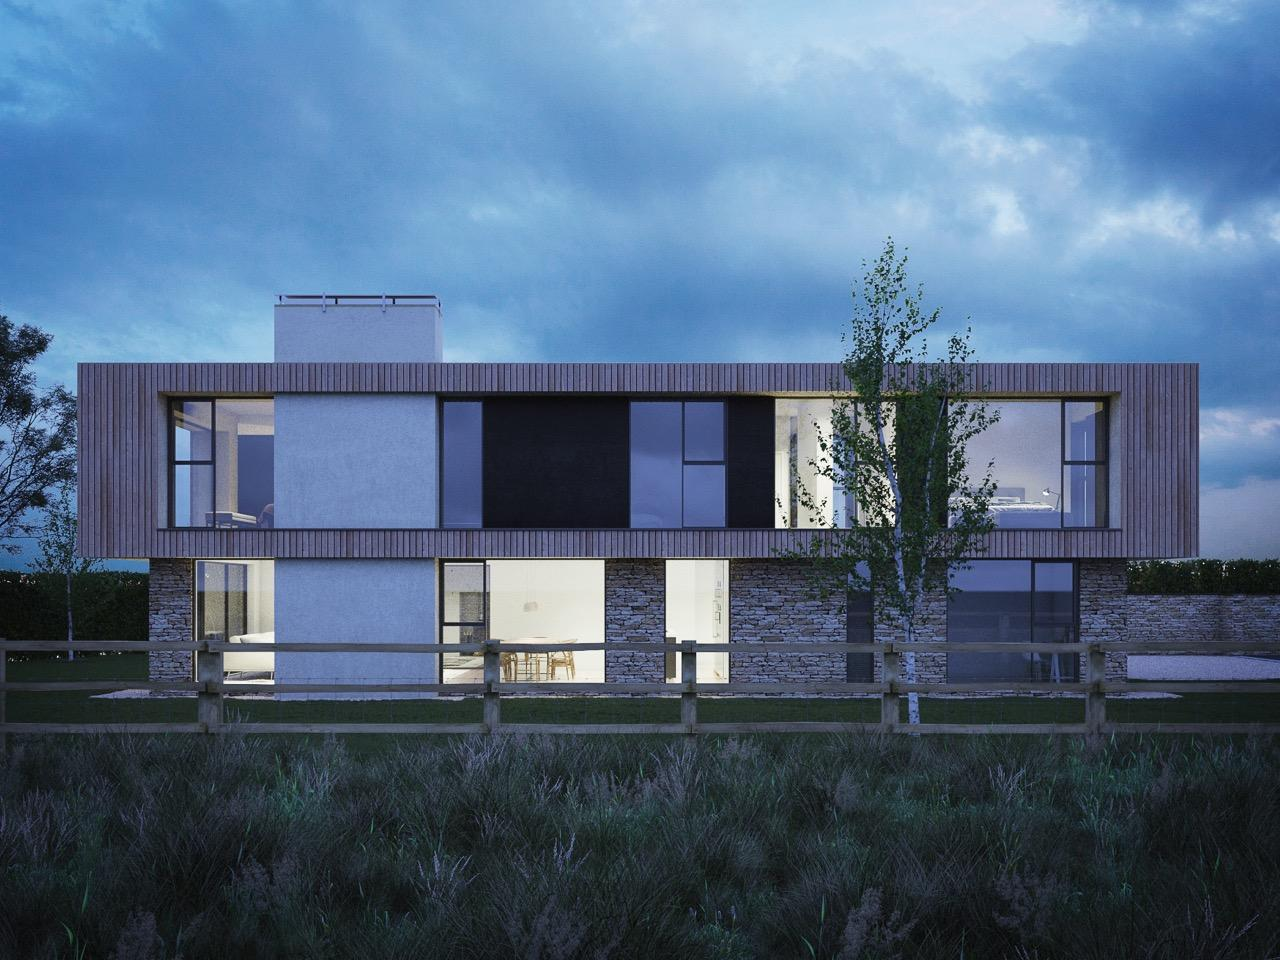 CGI image of proposed house